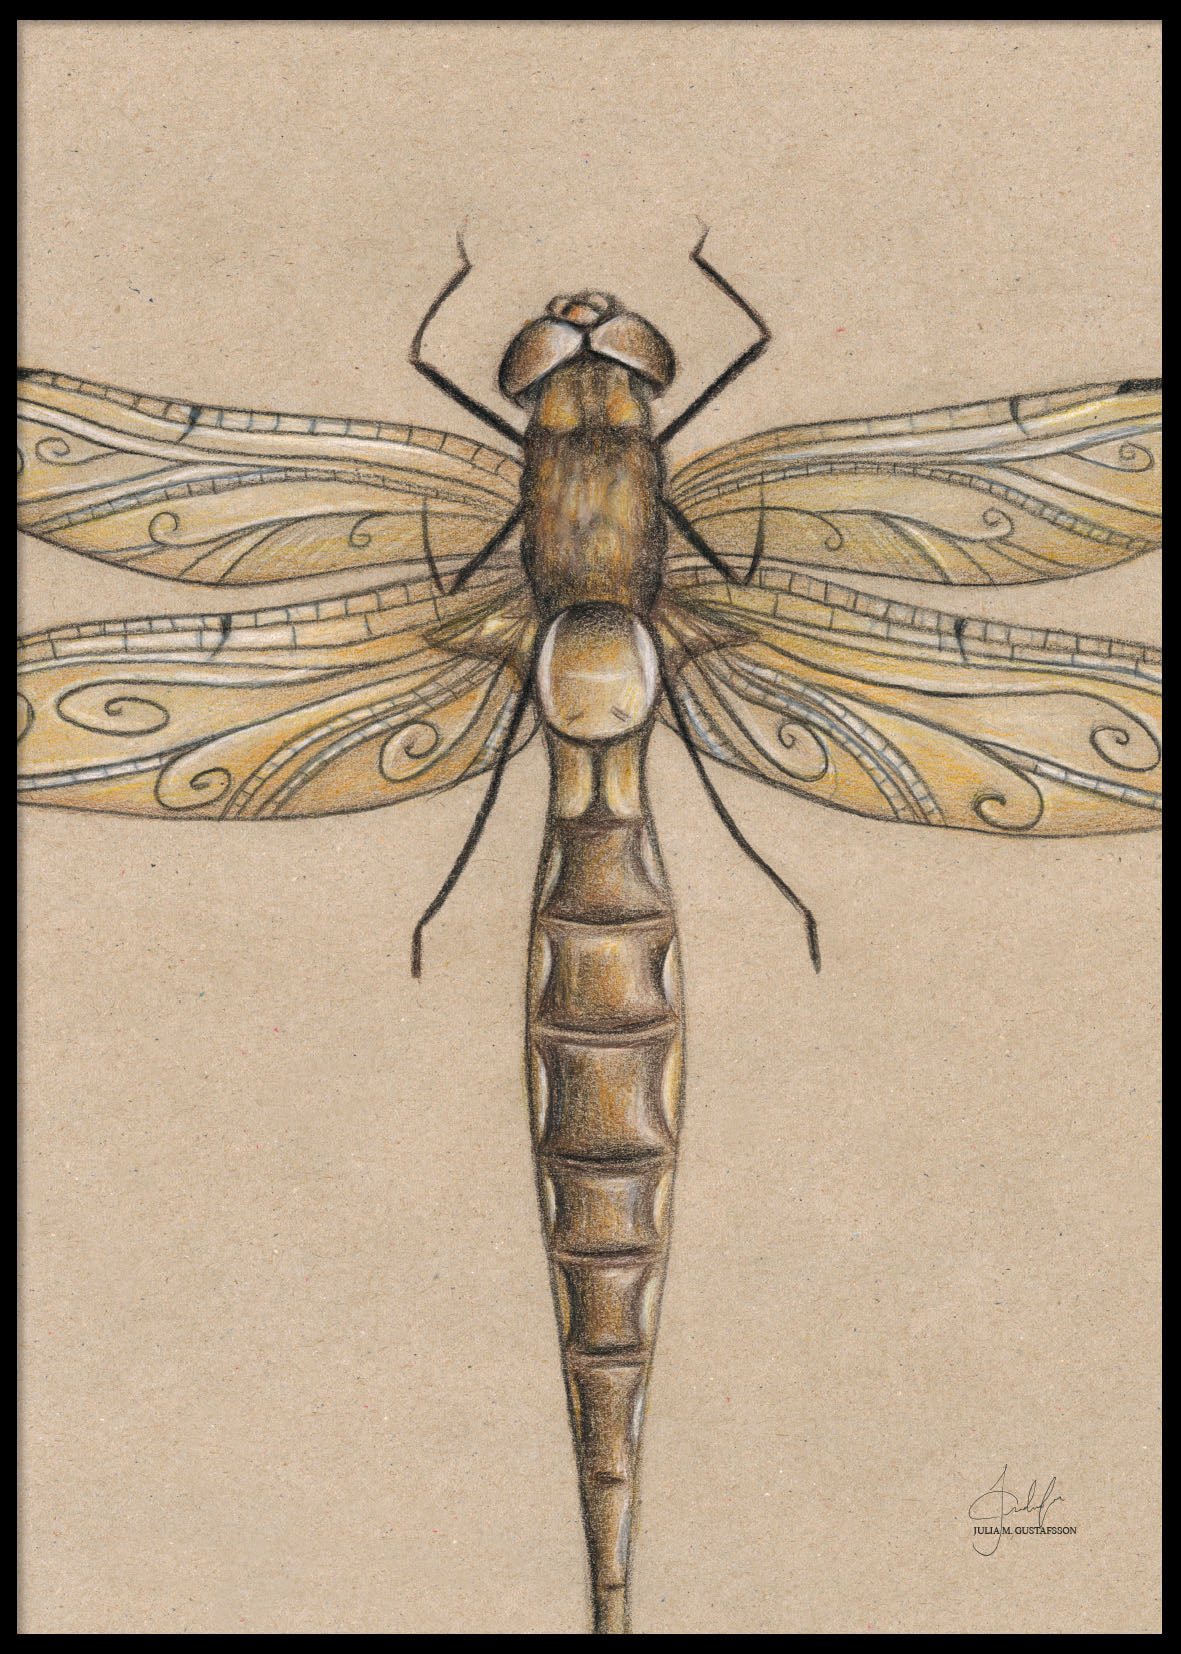 HAND-PAINTED DRAGONFLY POSTER